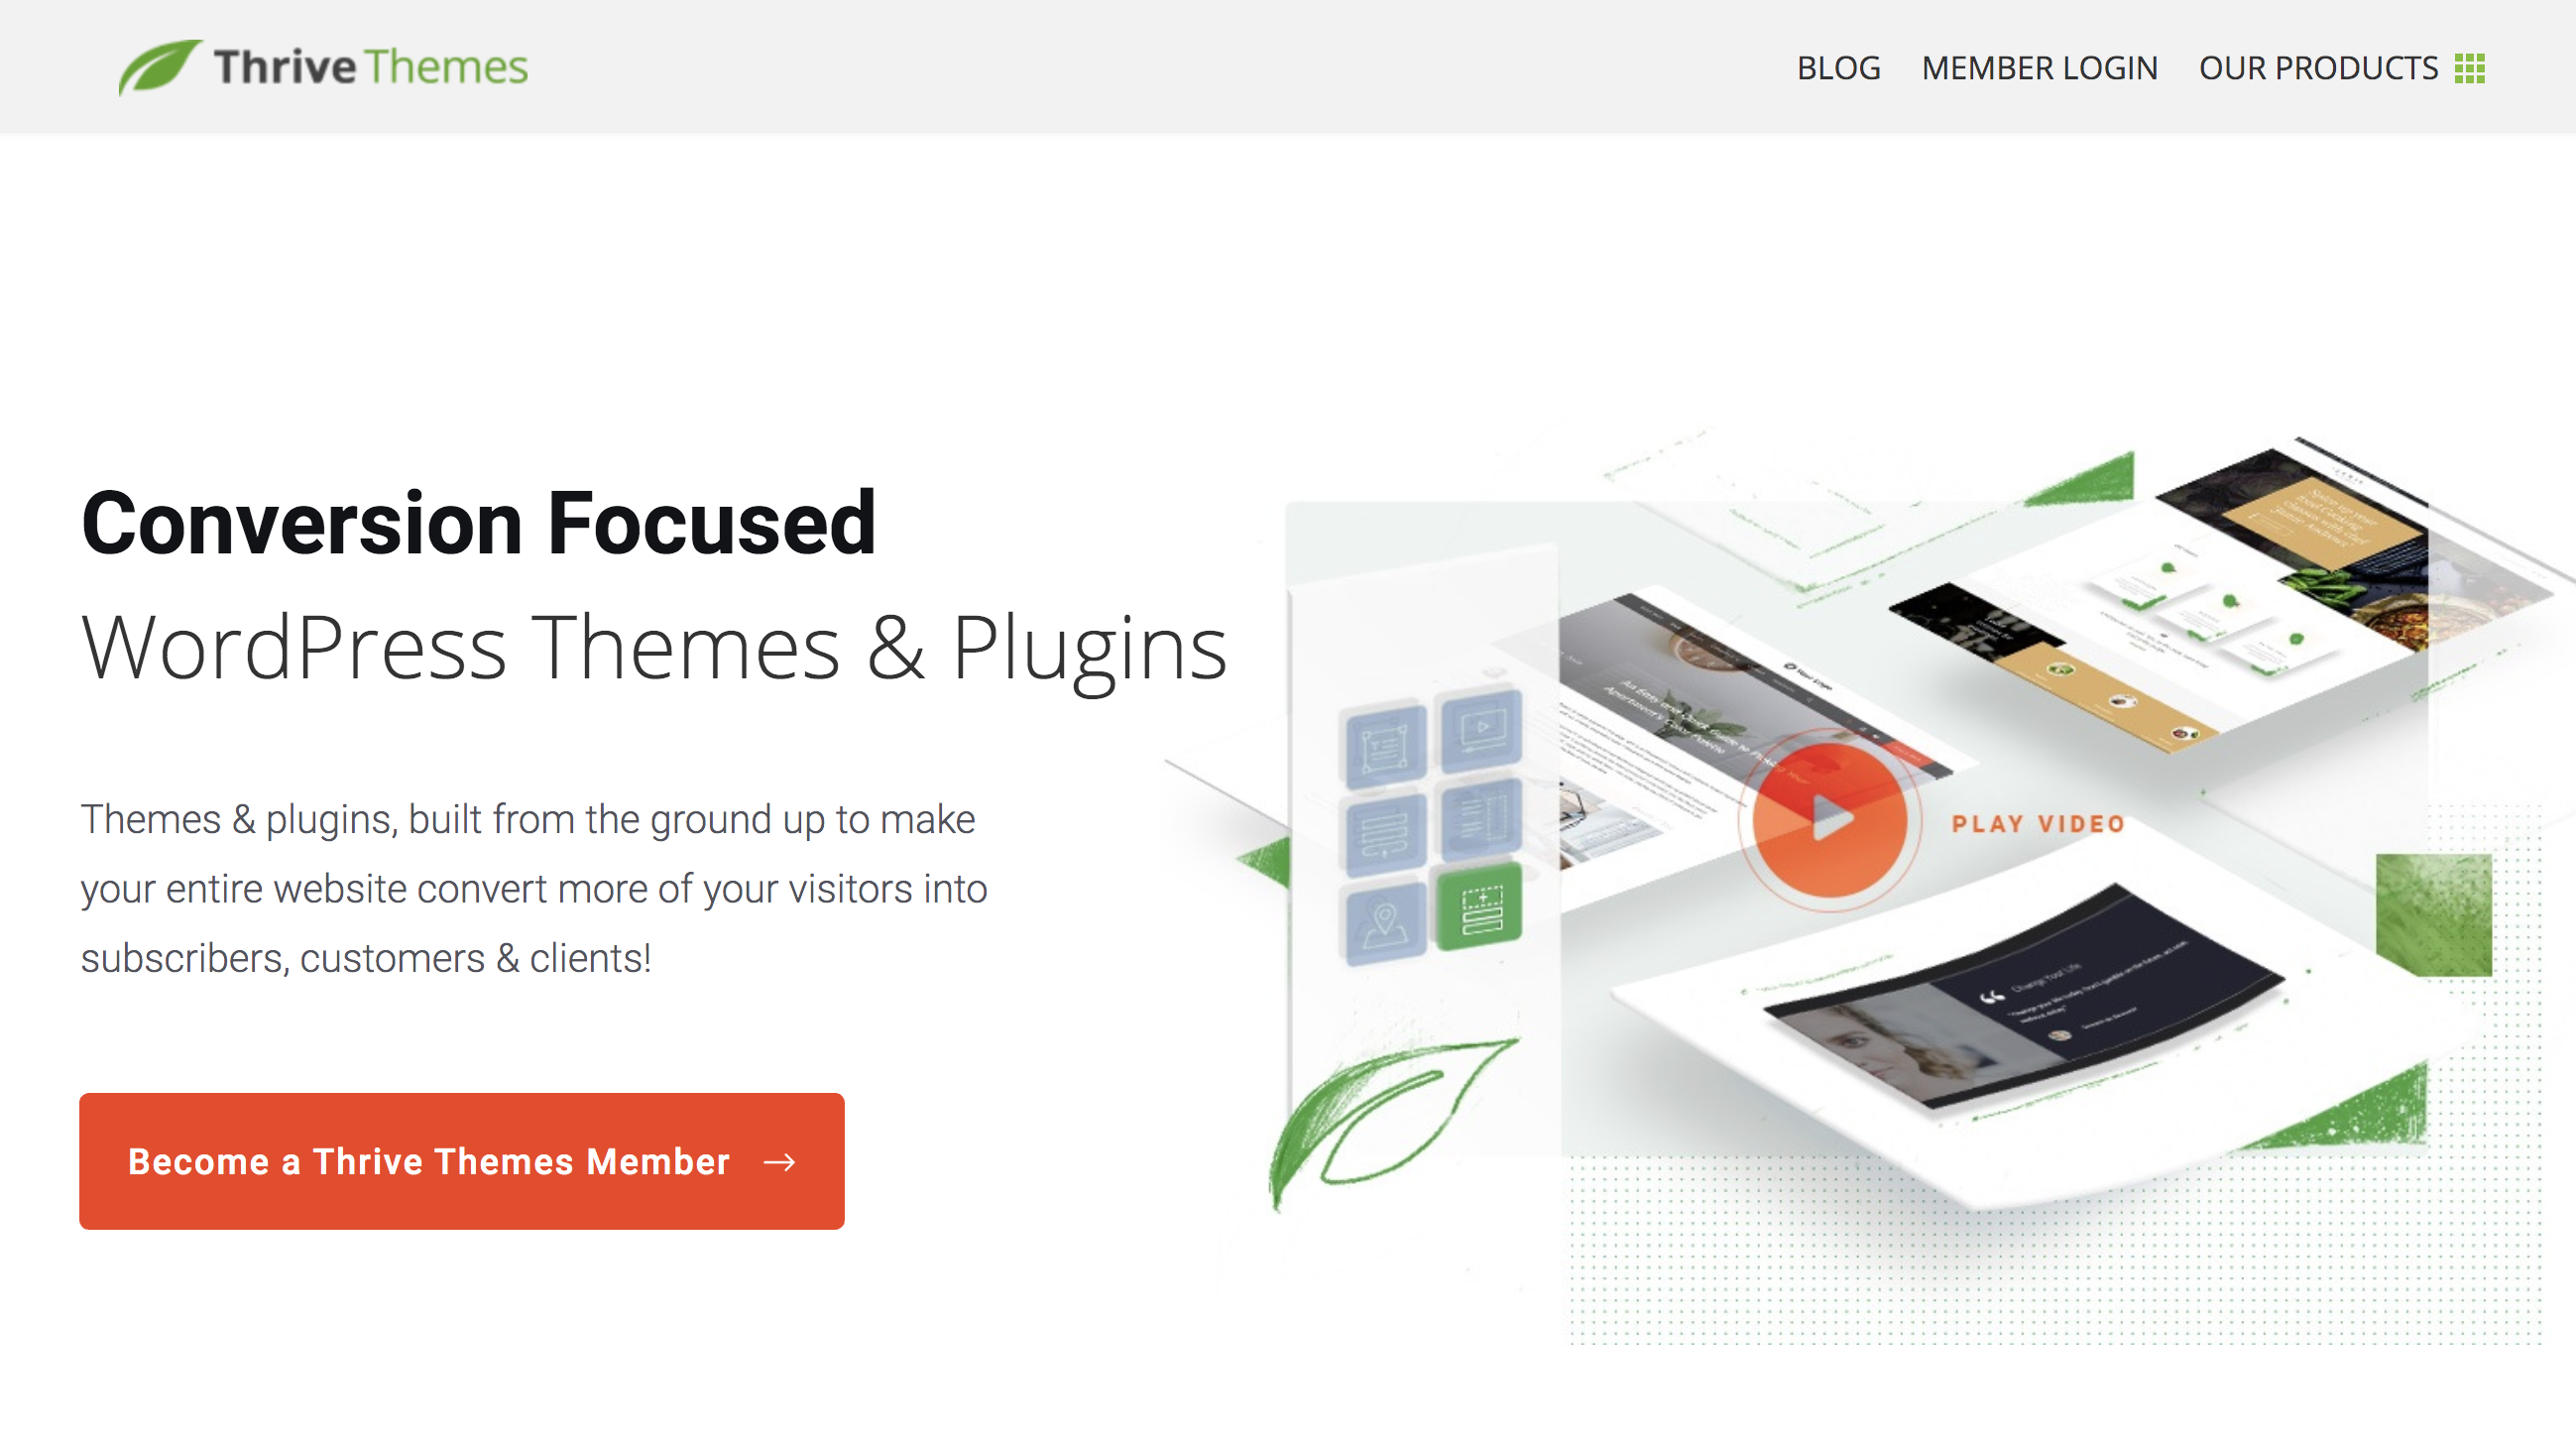 Thrive Themes Review – Conversion Focused WordPress Themes